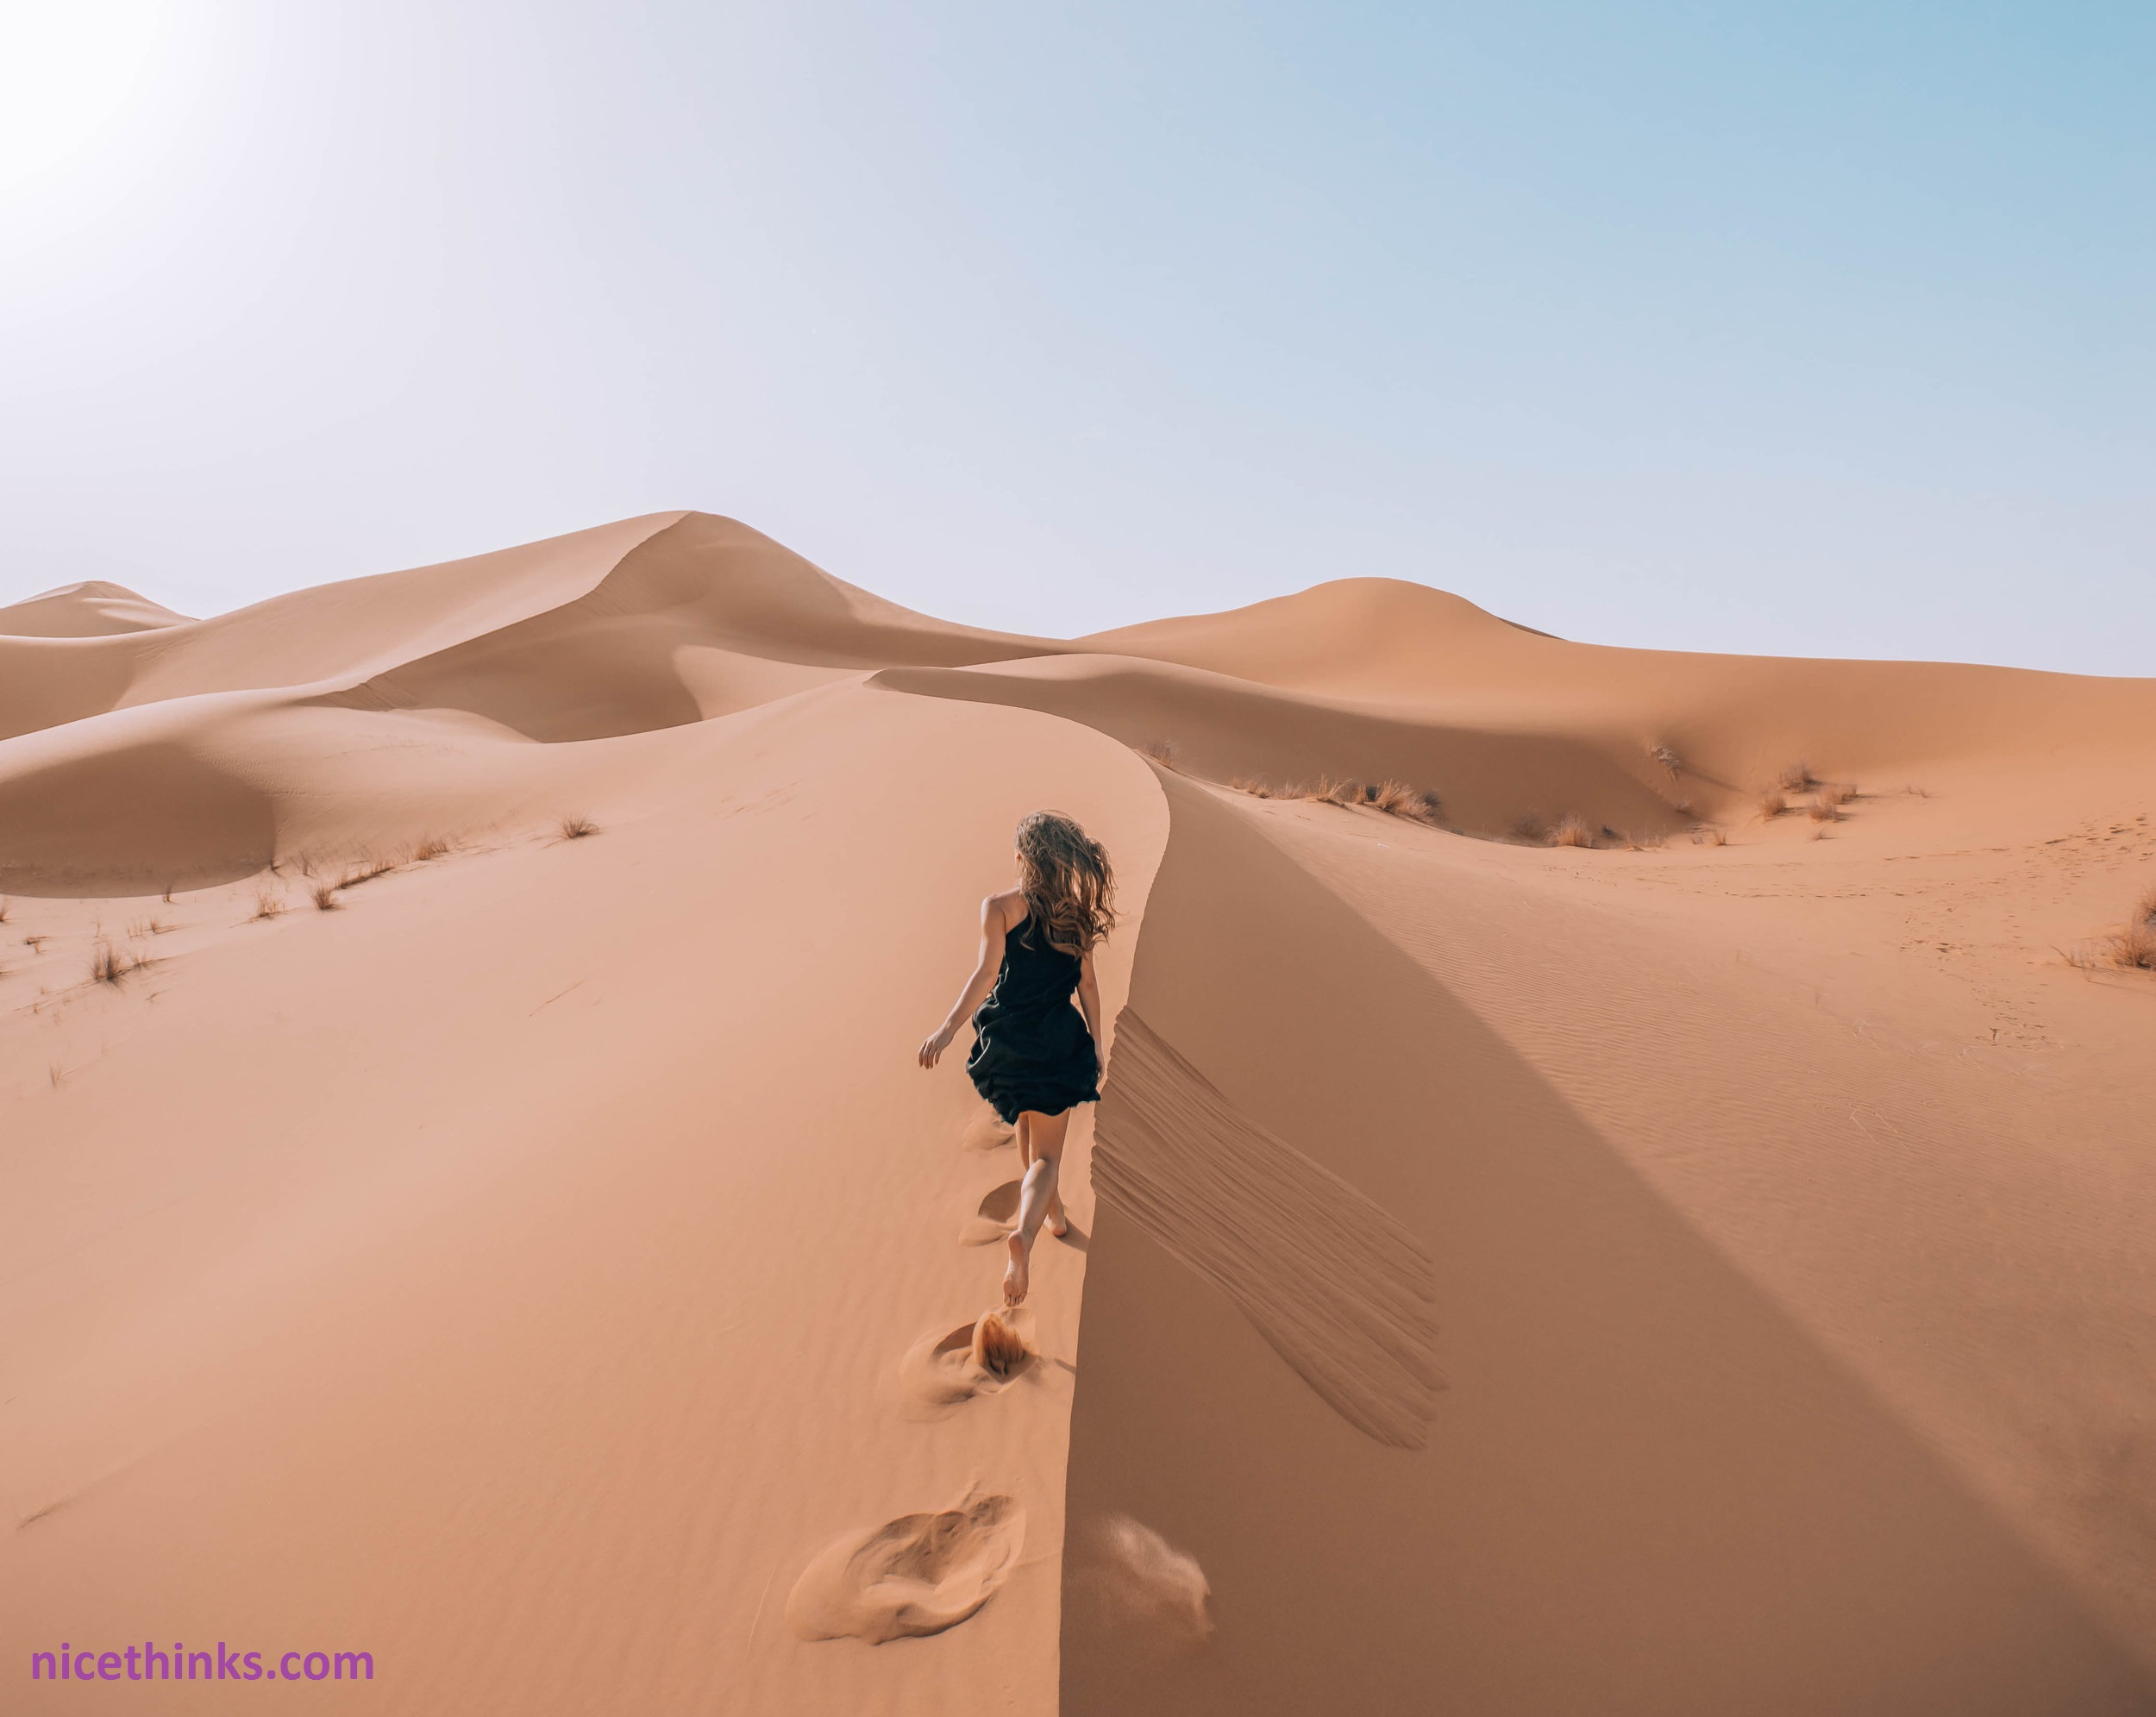 The beautiful atmosphere of the desert